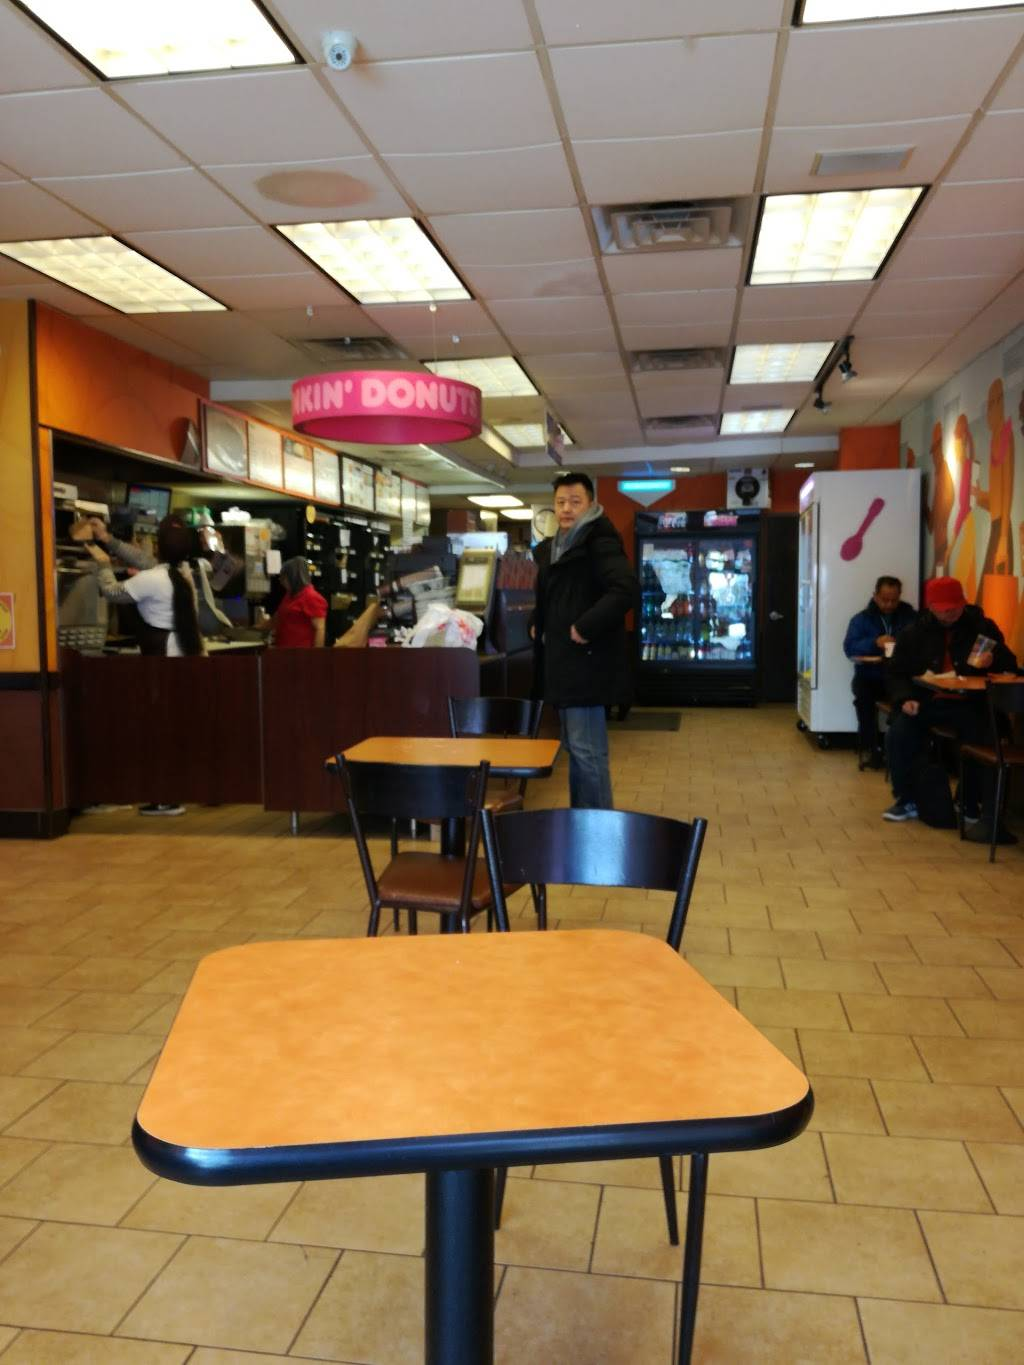 Dunkin Donuts | cafe | 1834 College Point Blvd, College Point, NY 11356, USA | 7185390016 OR +1 718-539-0016